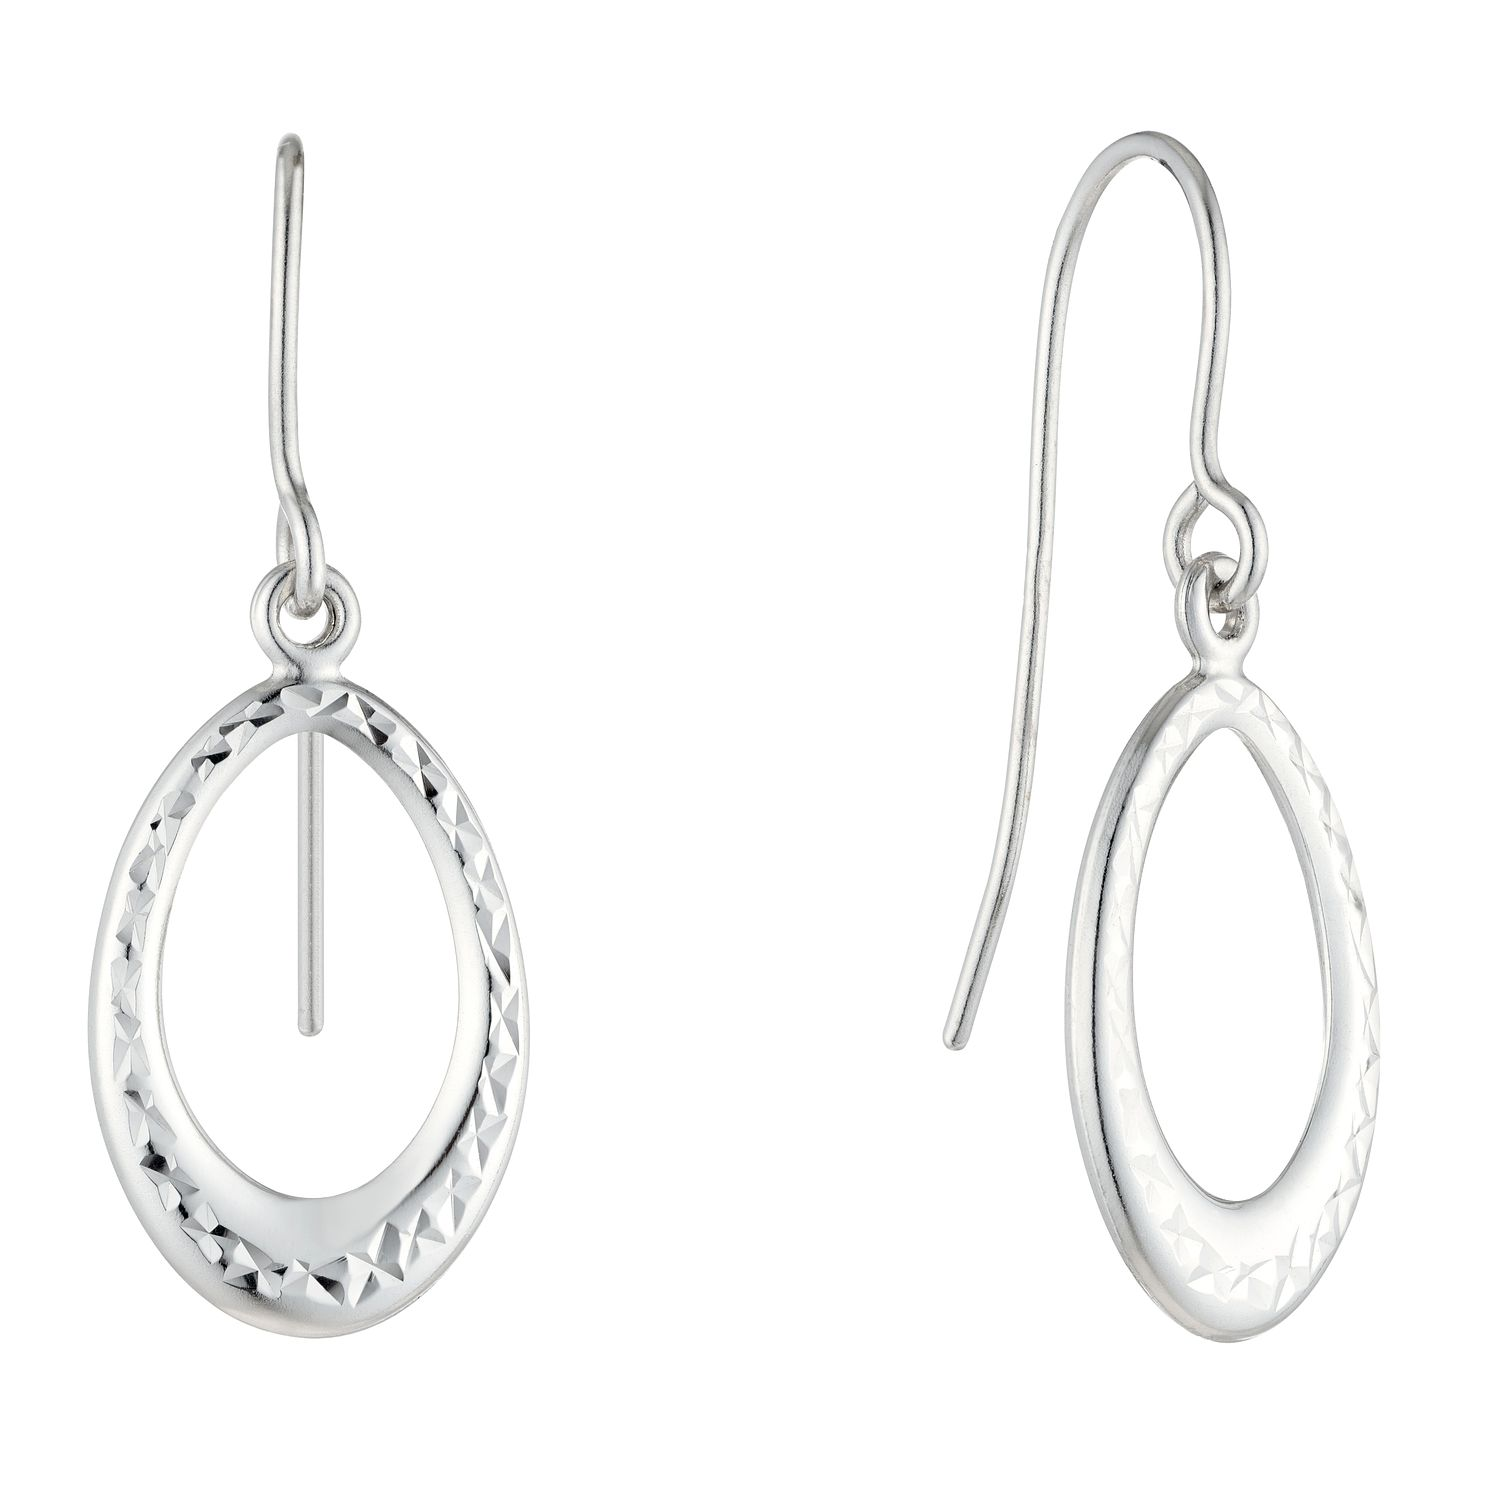 9ct White Gold Diamond-Cut Open Oval Drop Earrings - Product number 5088860